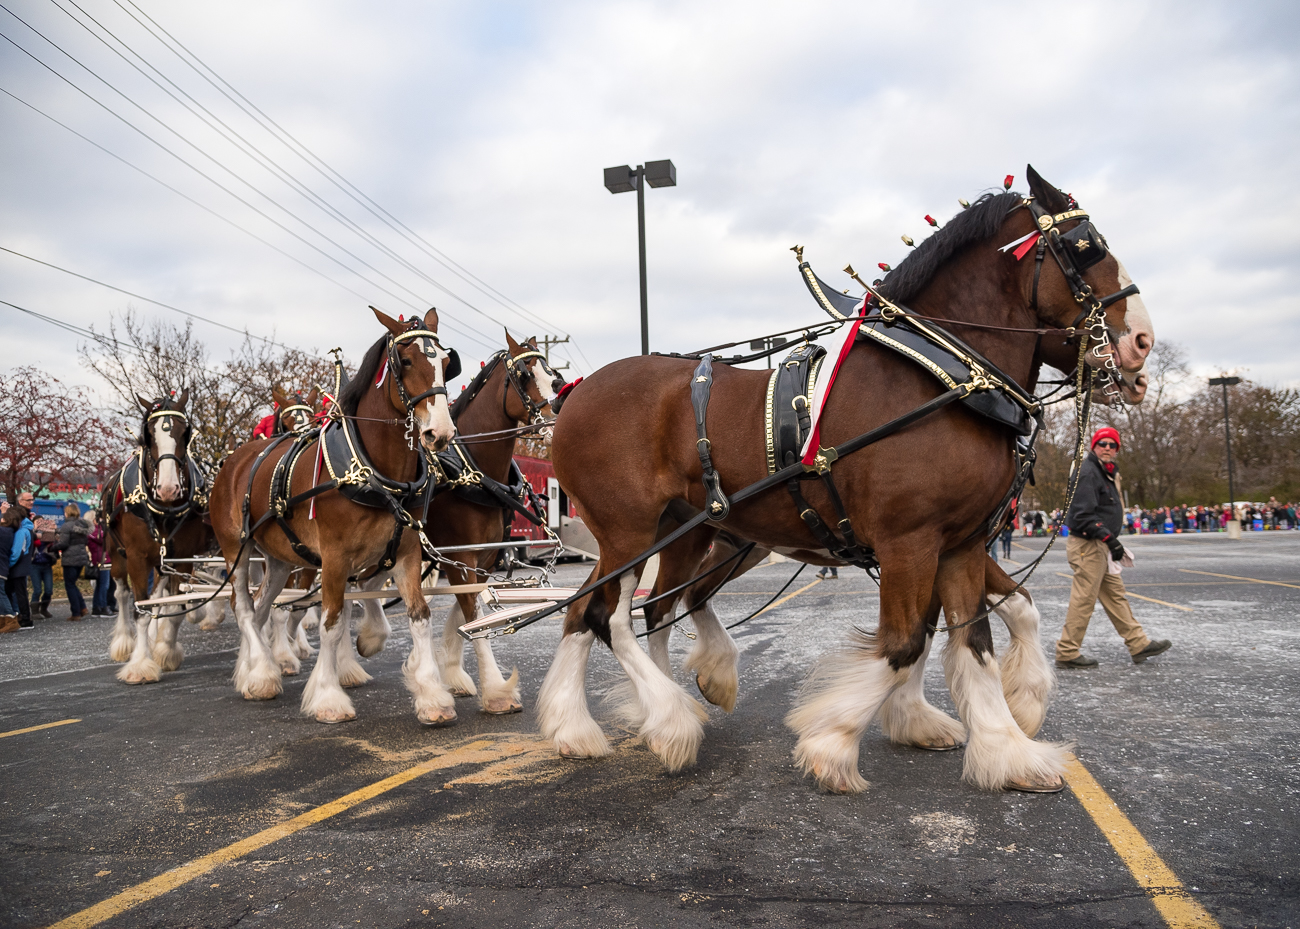 Clydesdales are originally Scottish horses that have been bred over time to be larger in size than they were back in 1933. The Budweiser Clydesdales originated in St. Louis when August A. Busch, Jr. gifted the horses to his father, August Anheuser, with a wagon attached that paraded the first case of post-Prohibition beer down a prominent street in St. Louis. The horses made the 350-mile journey to Bellevue from Missouri. / Image: Phil Armstrong, Cincinnati Refined // Published: 11.29.18